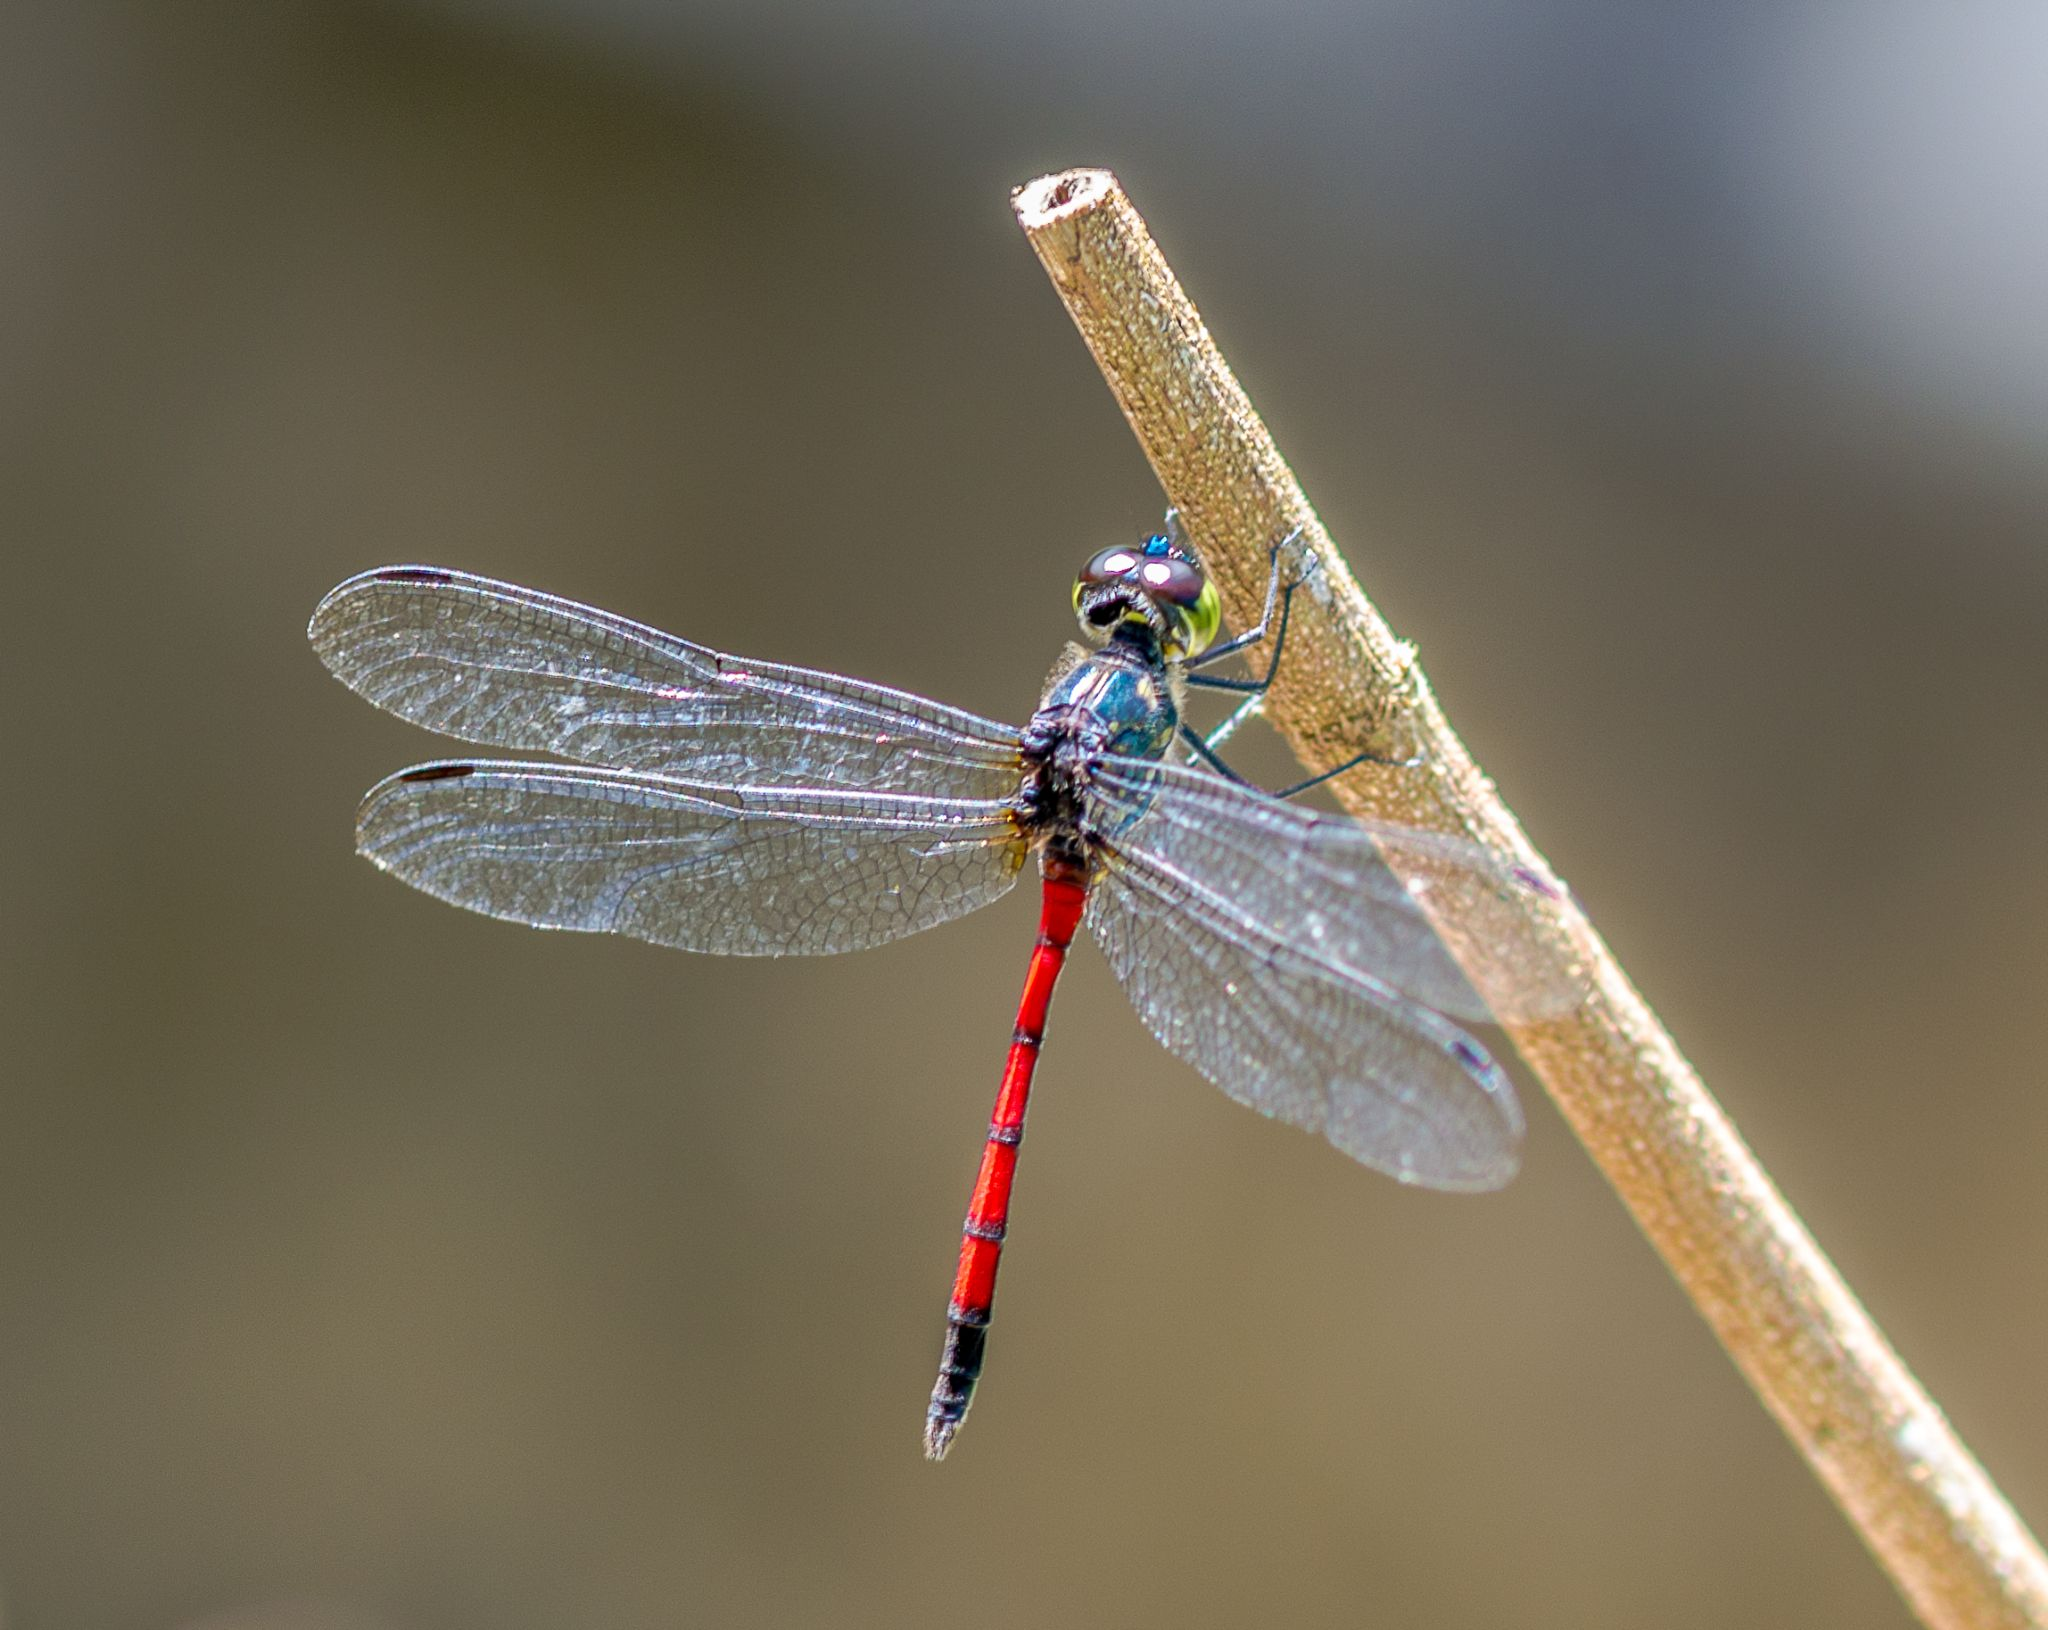 Dragonfly by albert.lee.98892